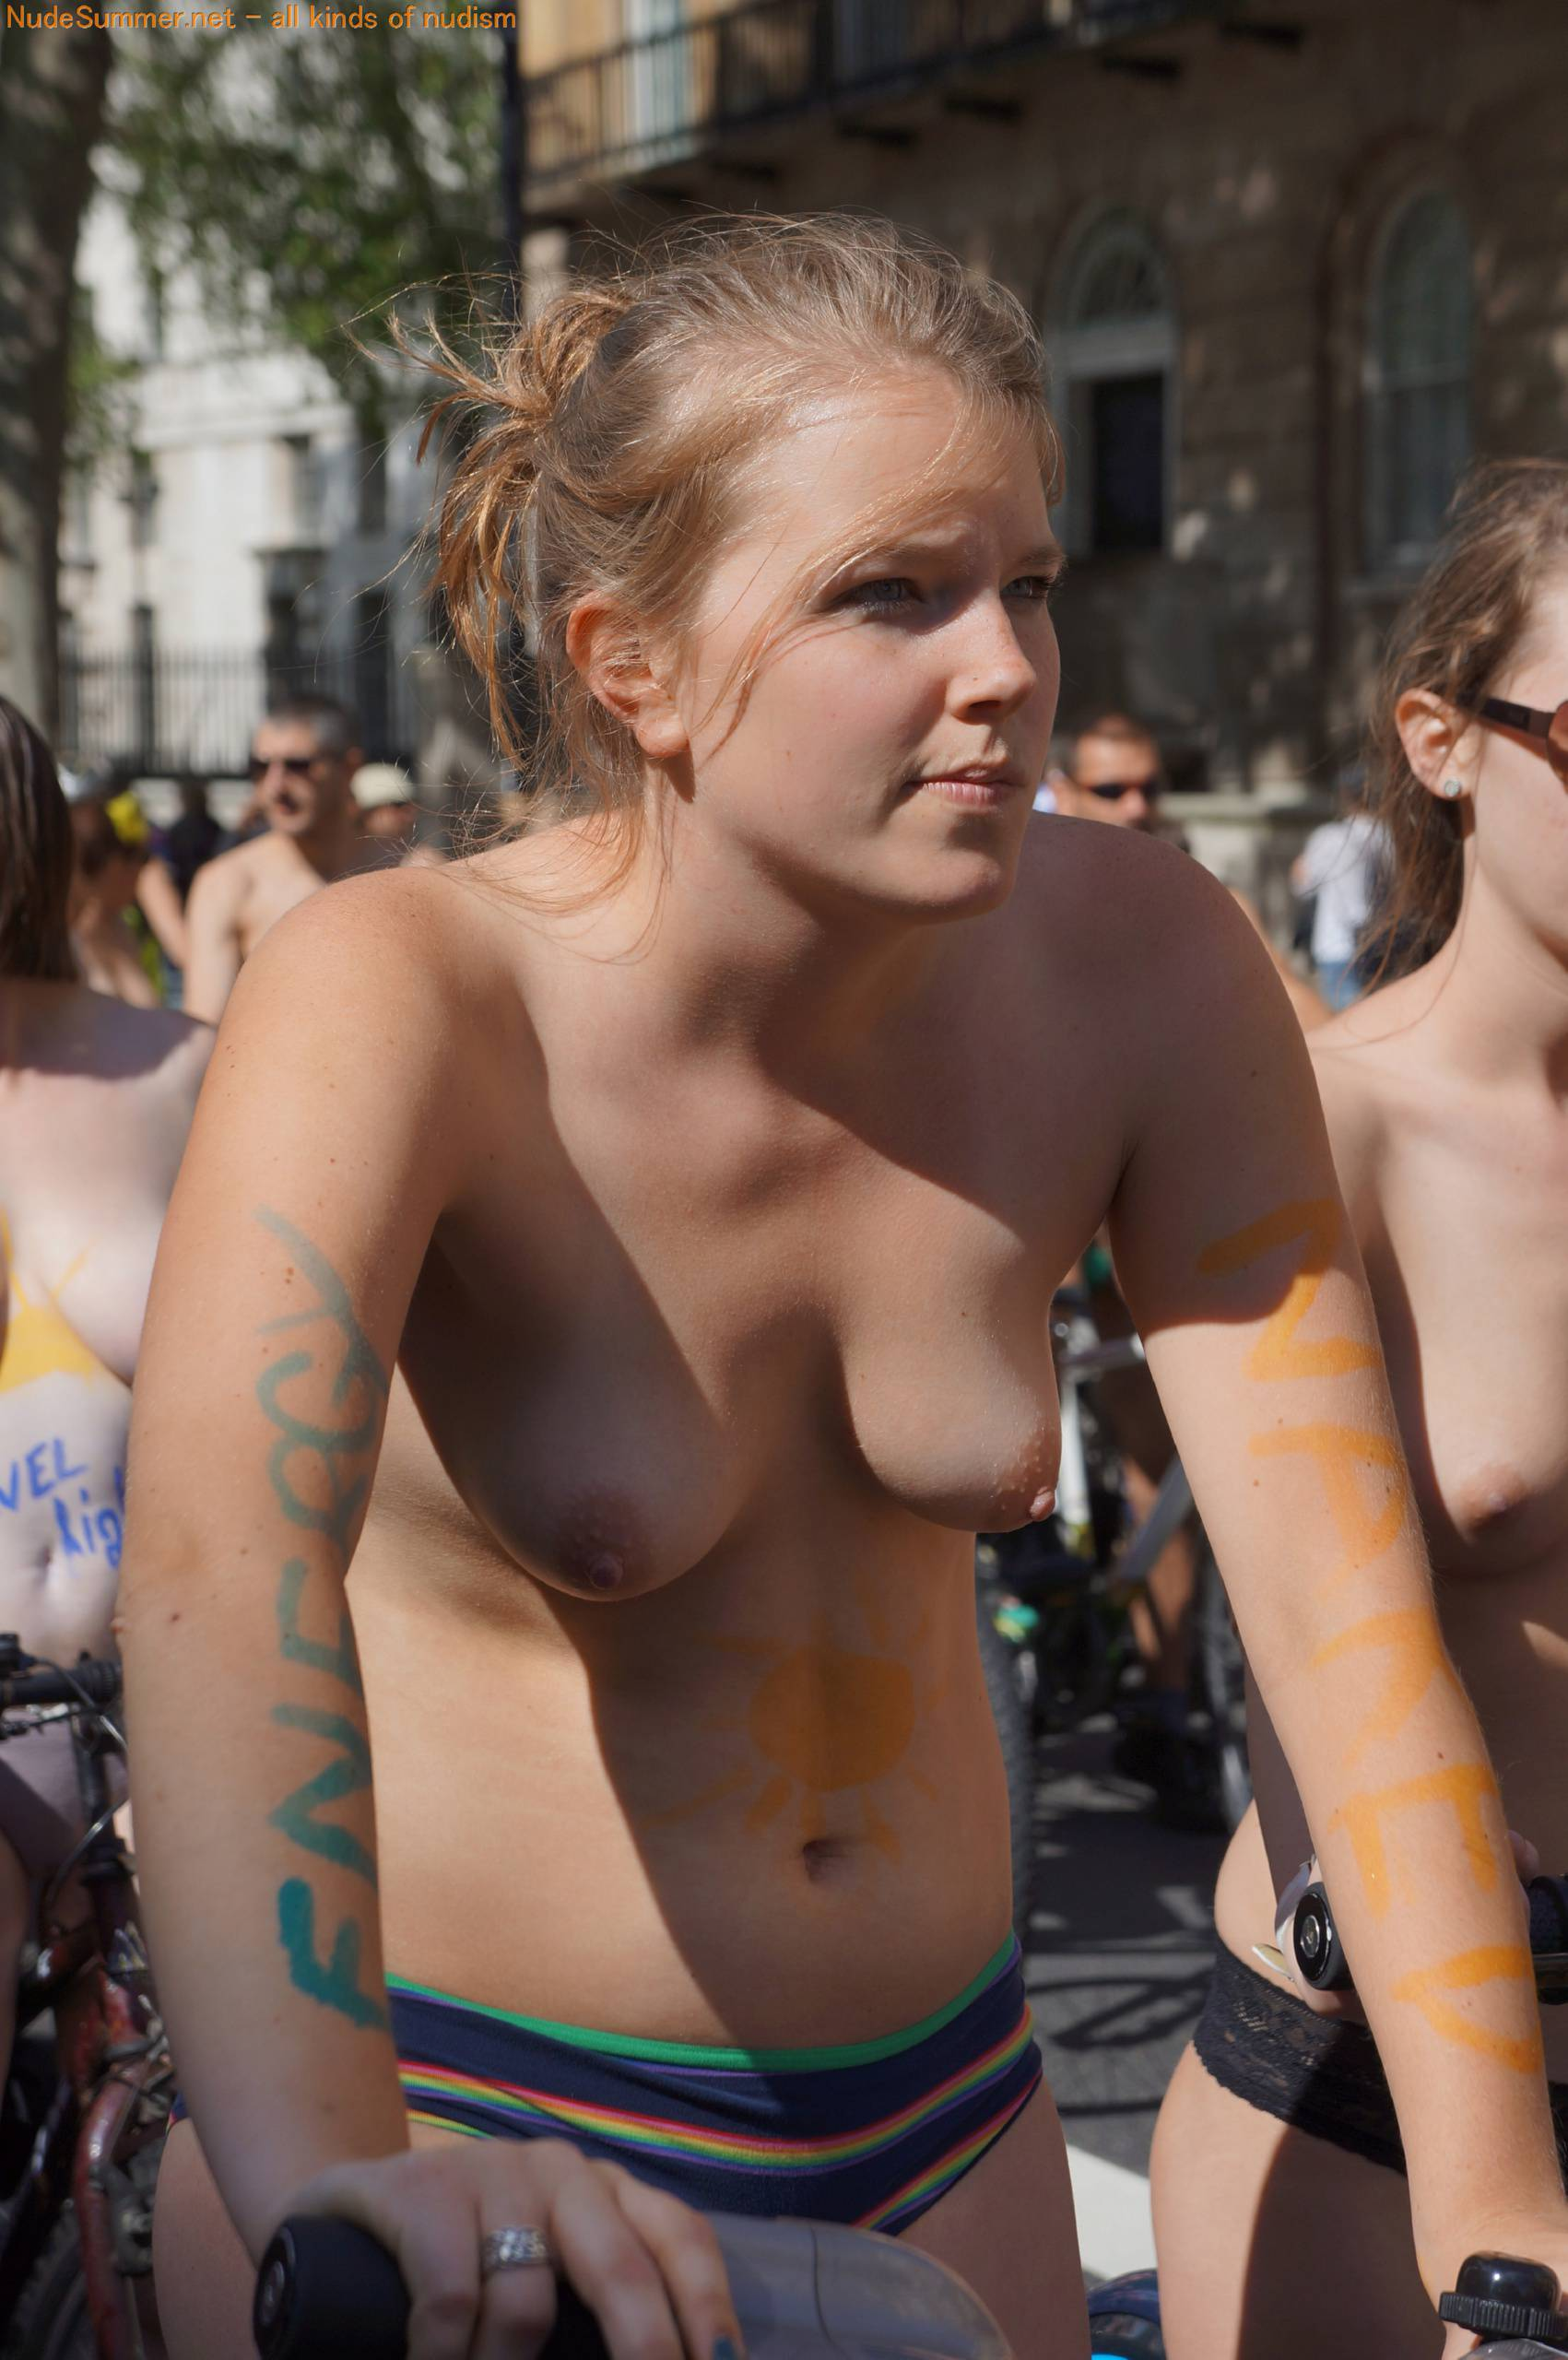 Nudist Pictures World Naked Bike Ride (WNBR) 2012 Part 2 - 1